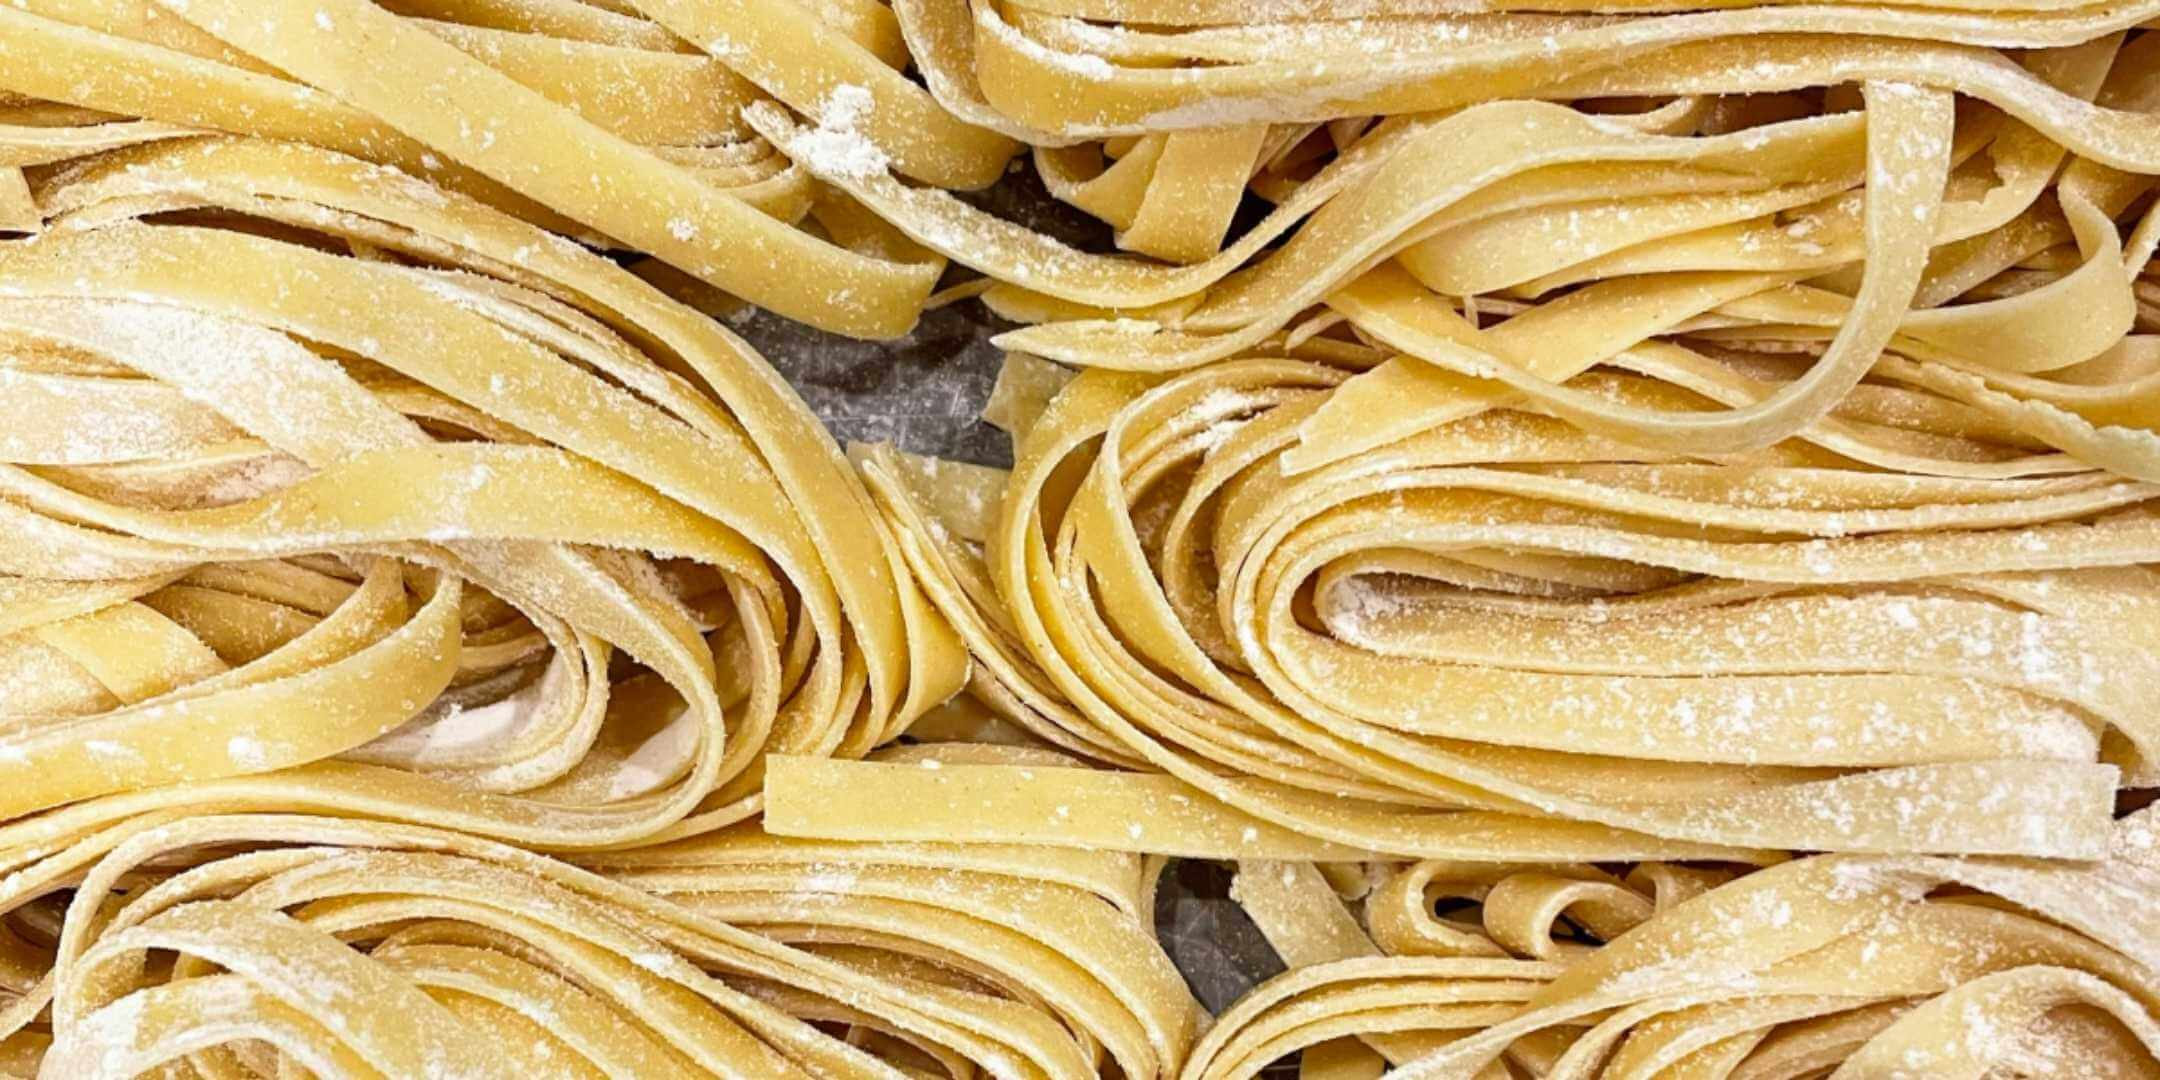 Expert webinar: The truth about carbs